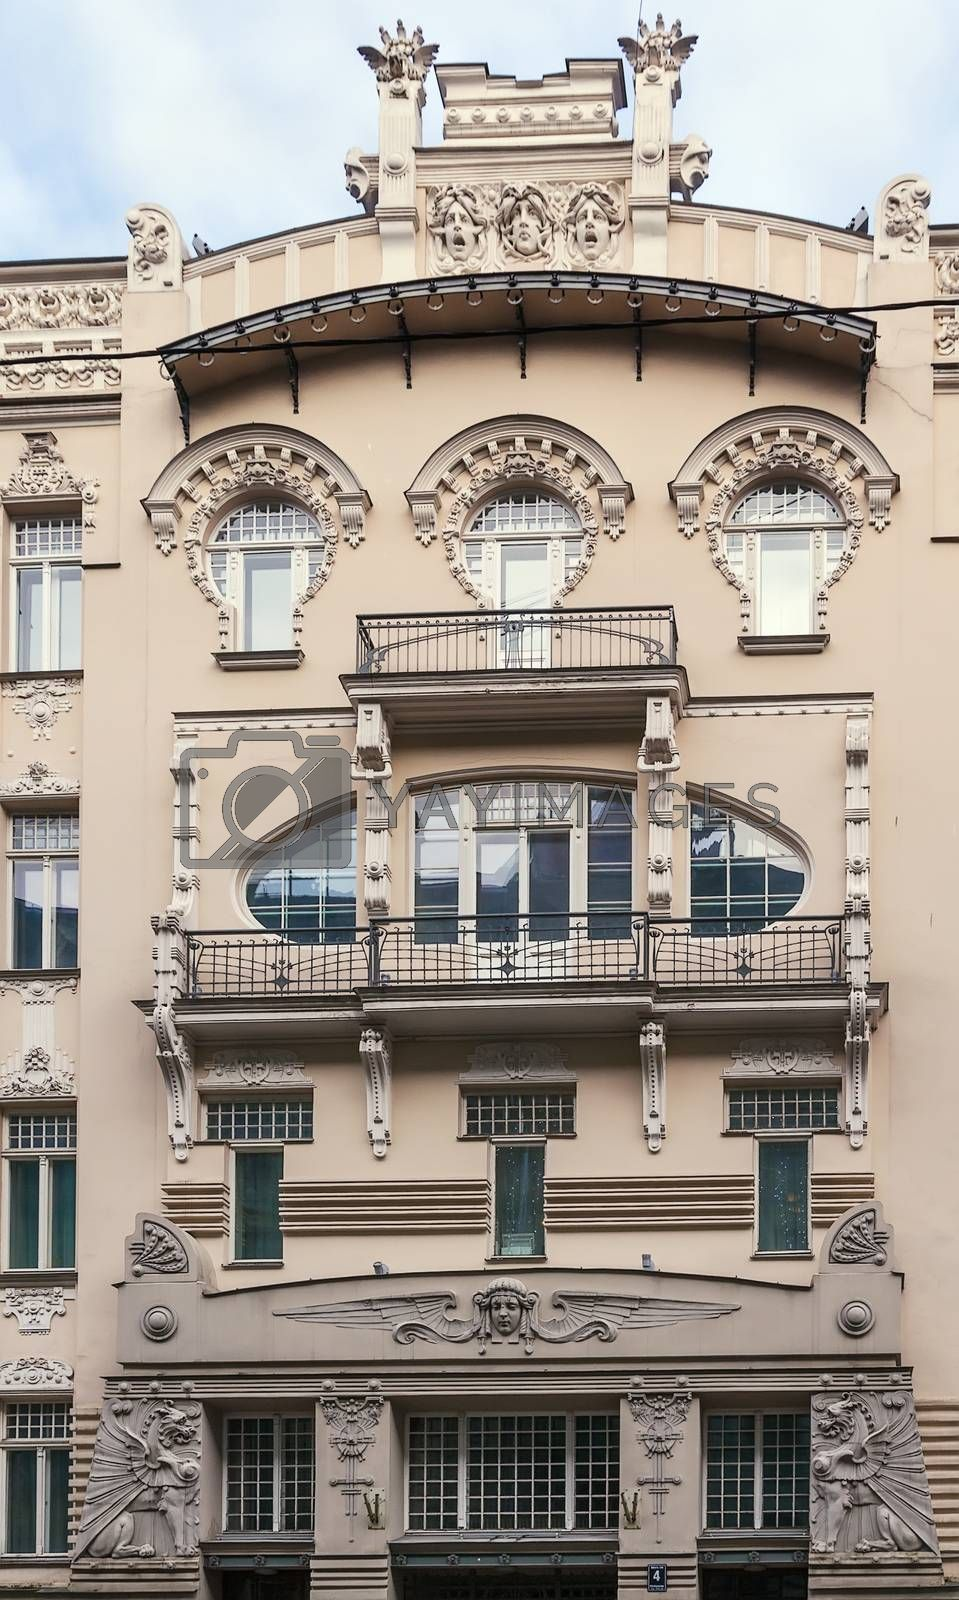 the building in Art Nouveau style, Riga by borisb17